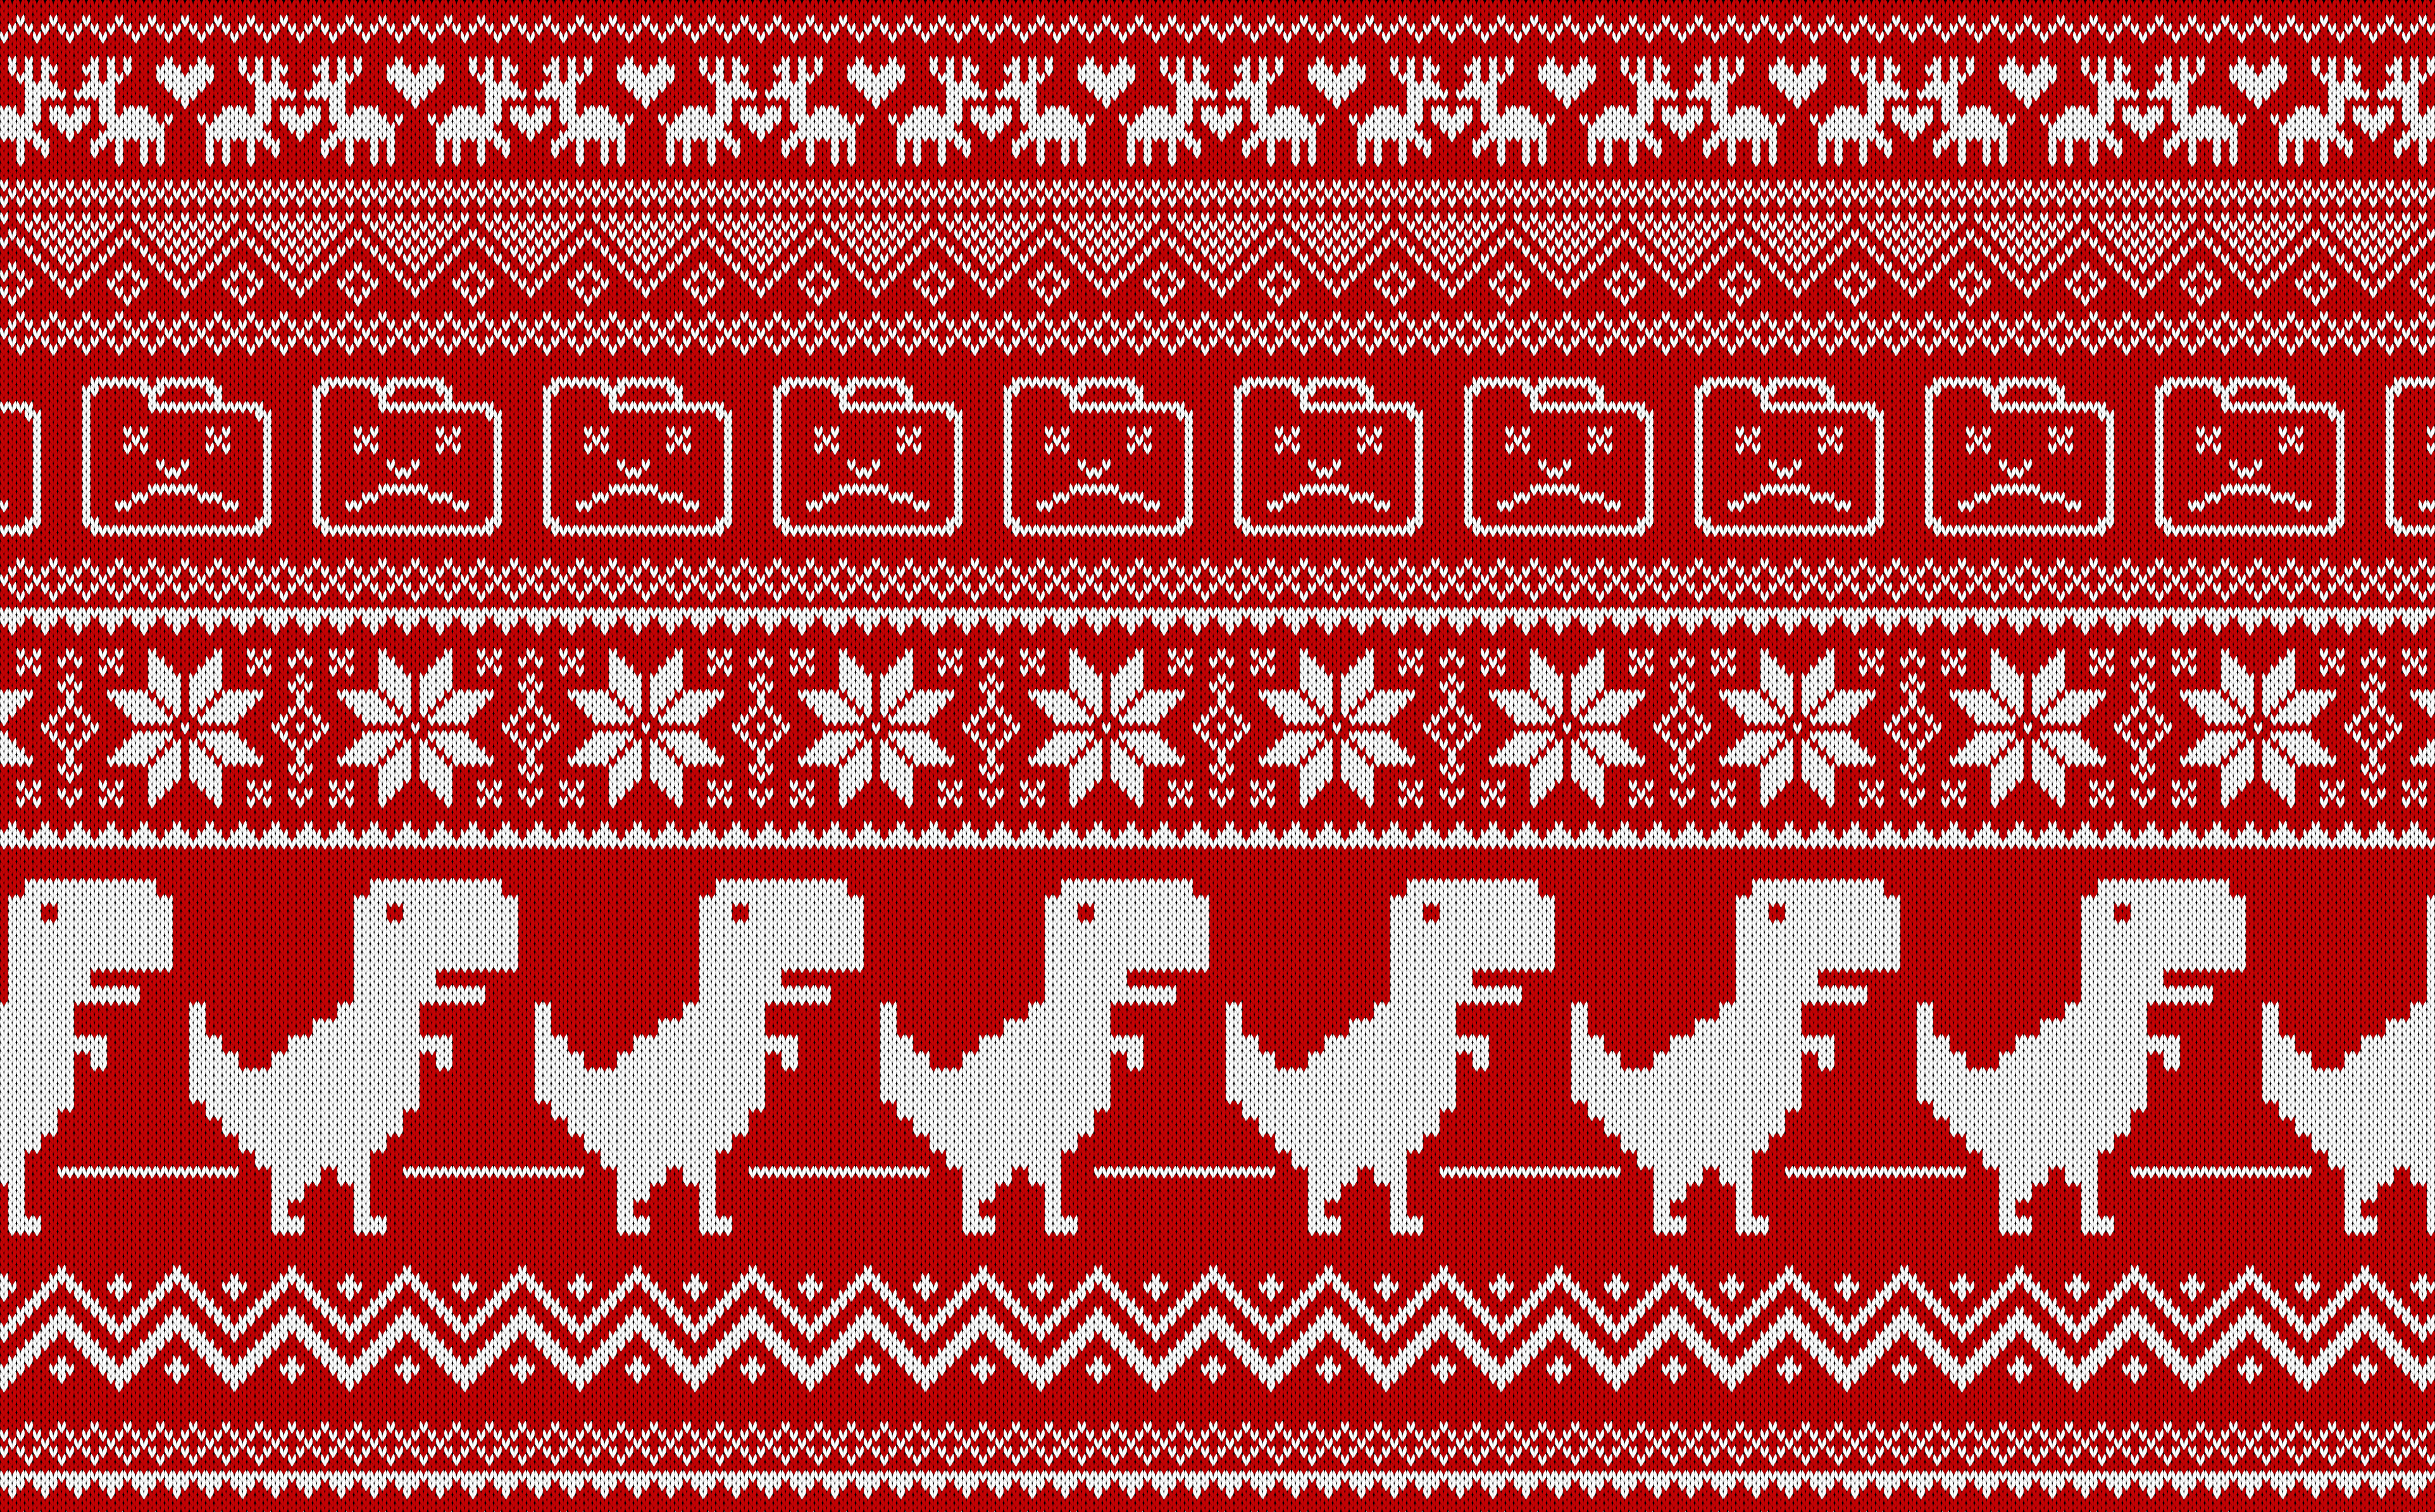 GitHub Kosamarisweaterify Make Your Own Ugly Sweater